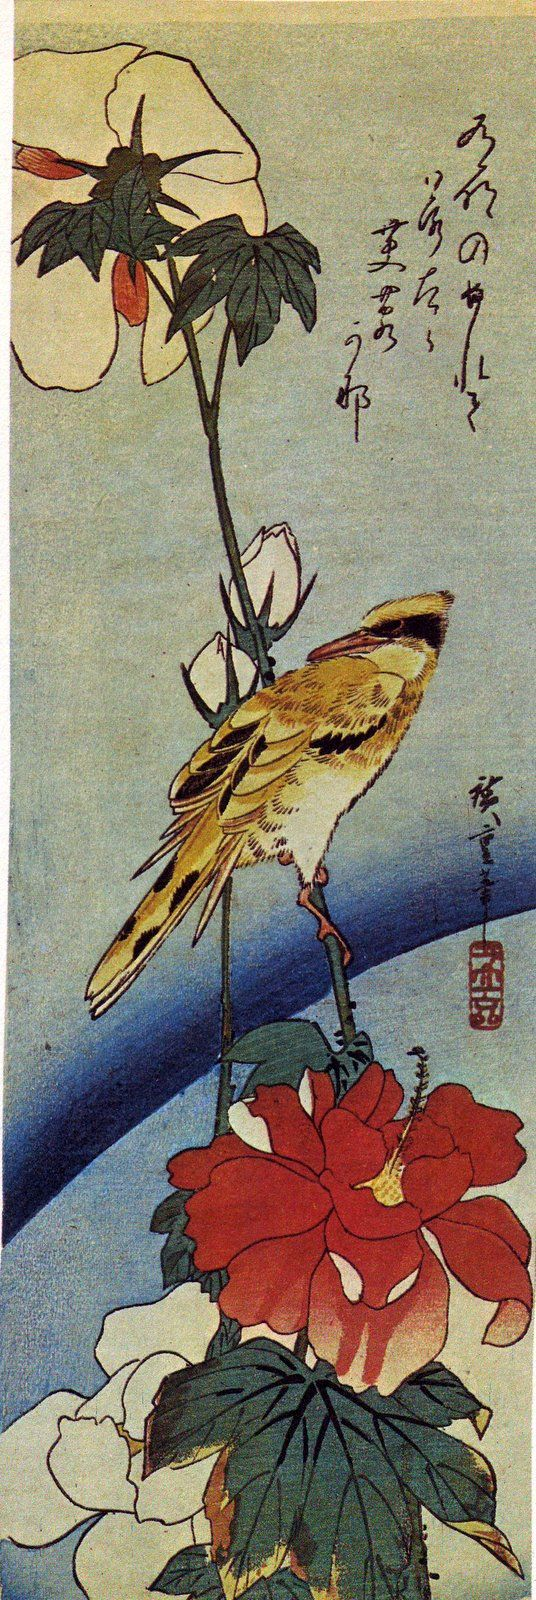 Hiroshige bird and flowers | Artists and Artworks ...